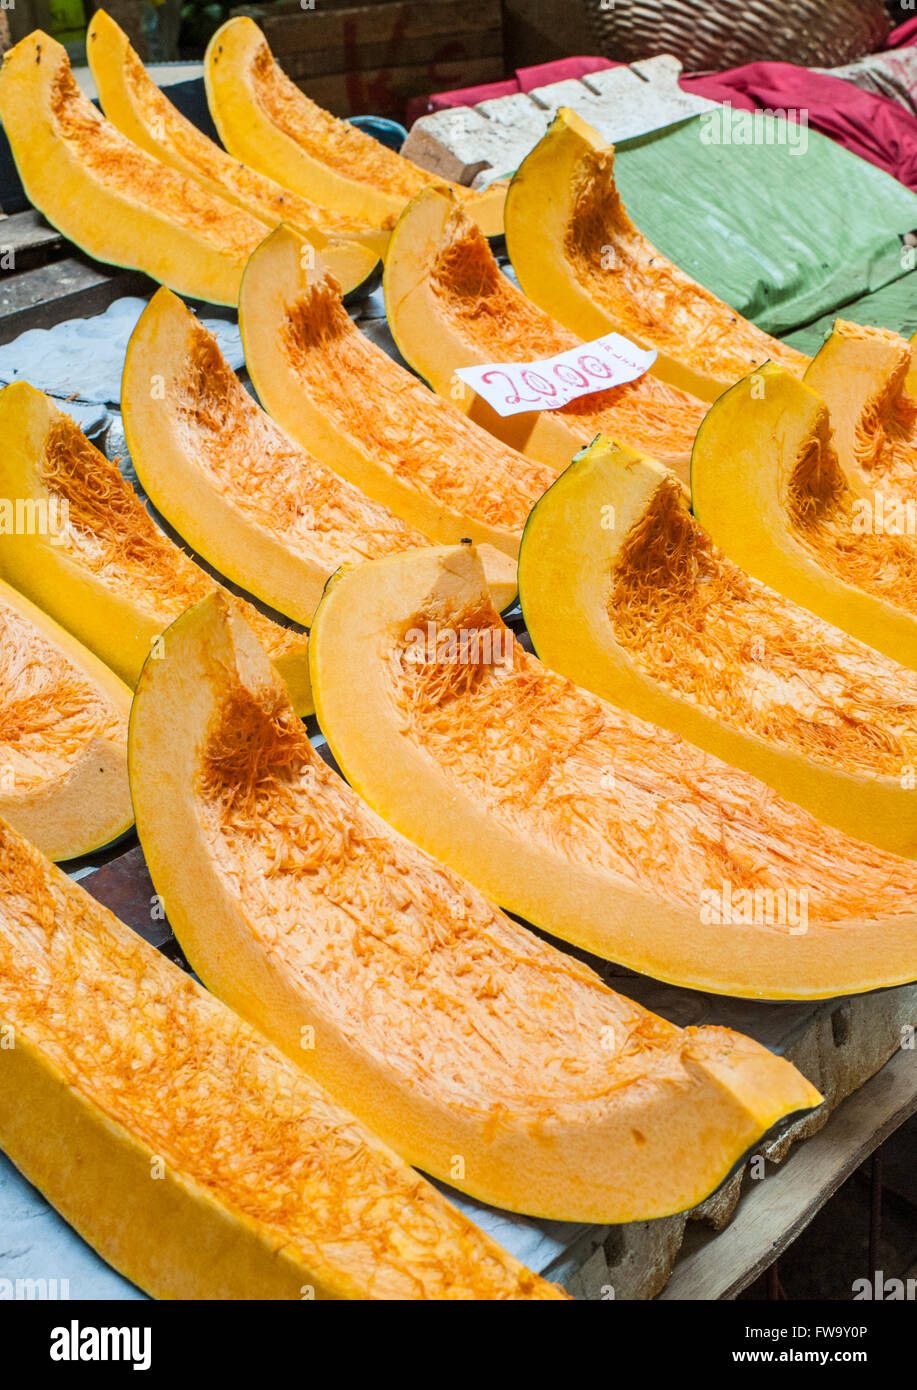 Pumpkin for sale at the market in Port Louis, the capital of Mauritius. Stock Photo